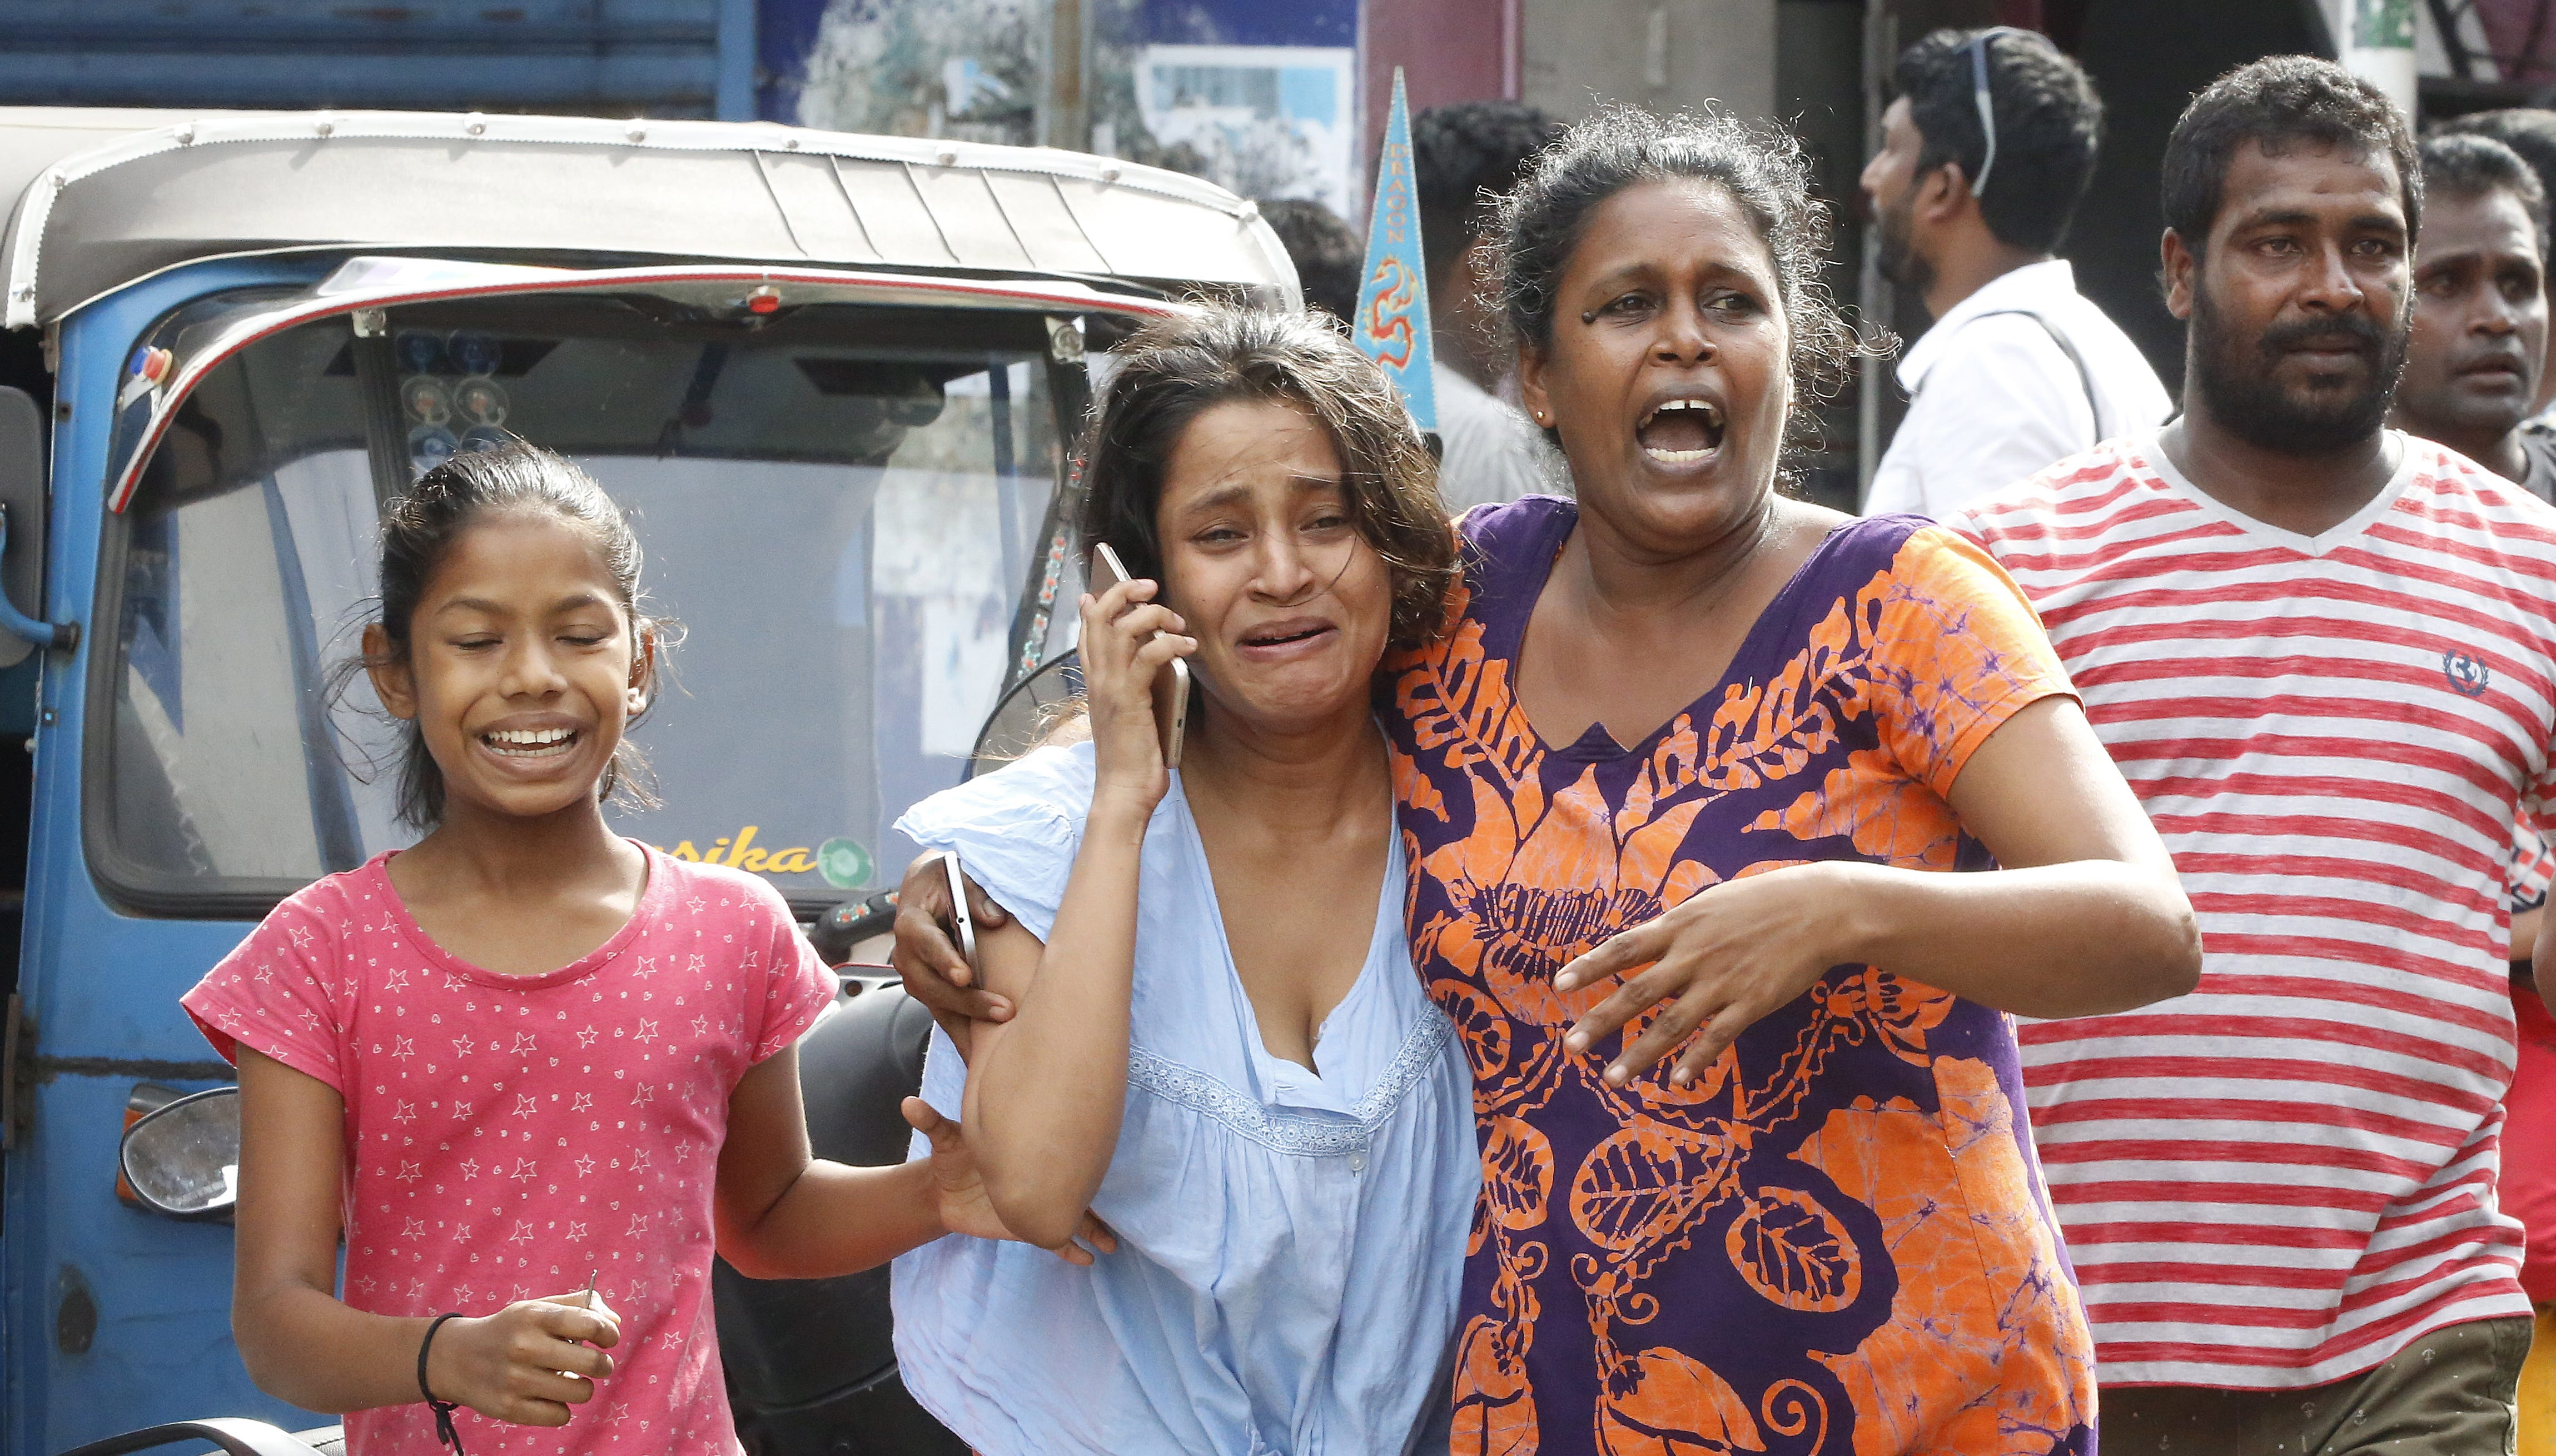 Sri Lankan people run for safety as authorities announced an evacuation of the area after a van was found parked with a suspected explosive device near St Anthony's Church Kochchikade in Colombo, Sri Lanka on April 22, 2019.